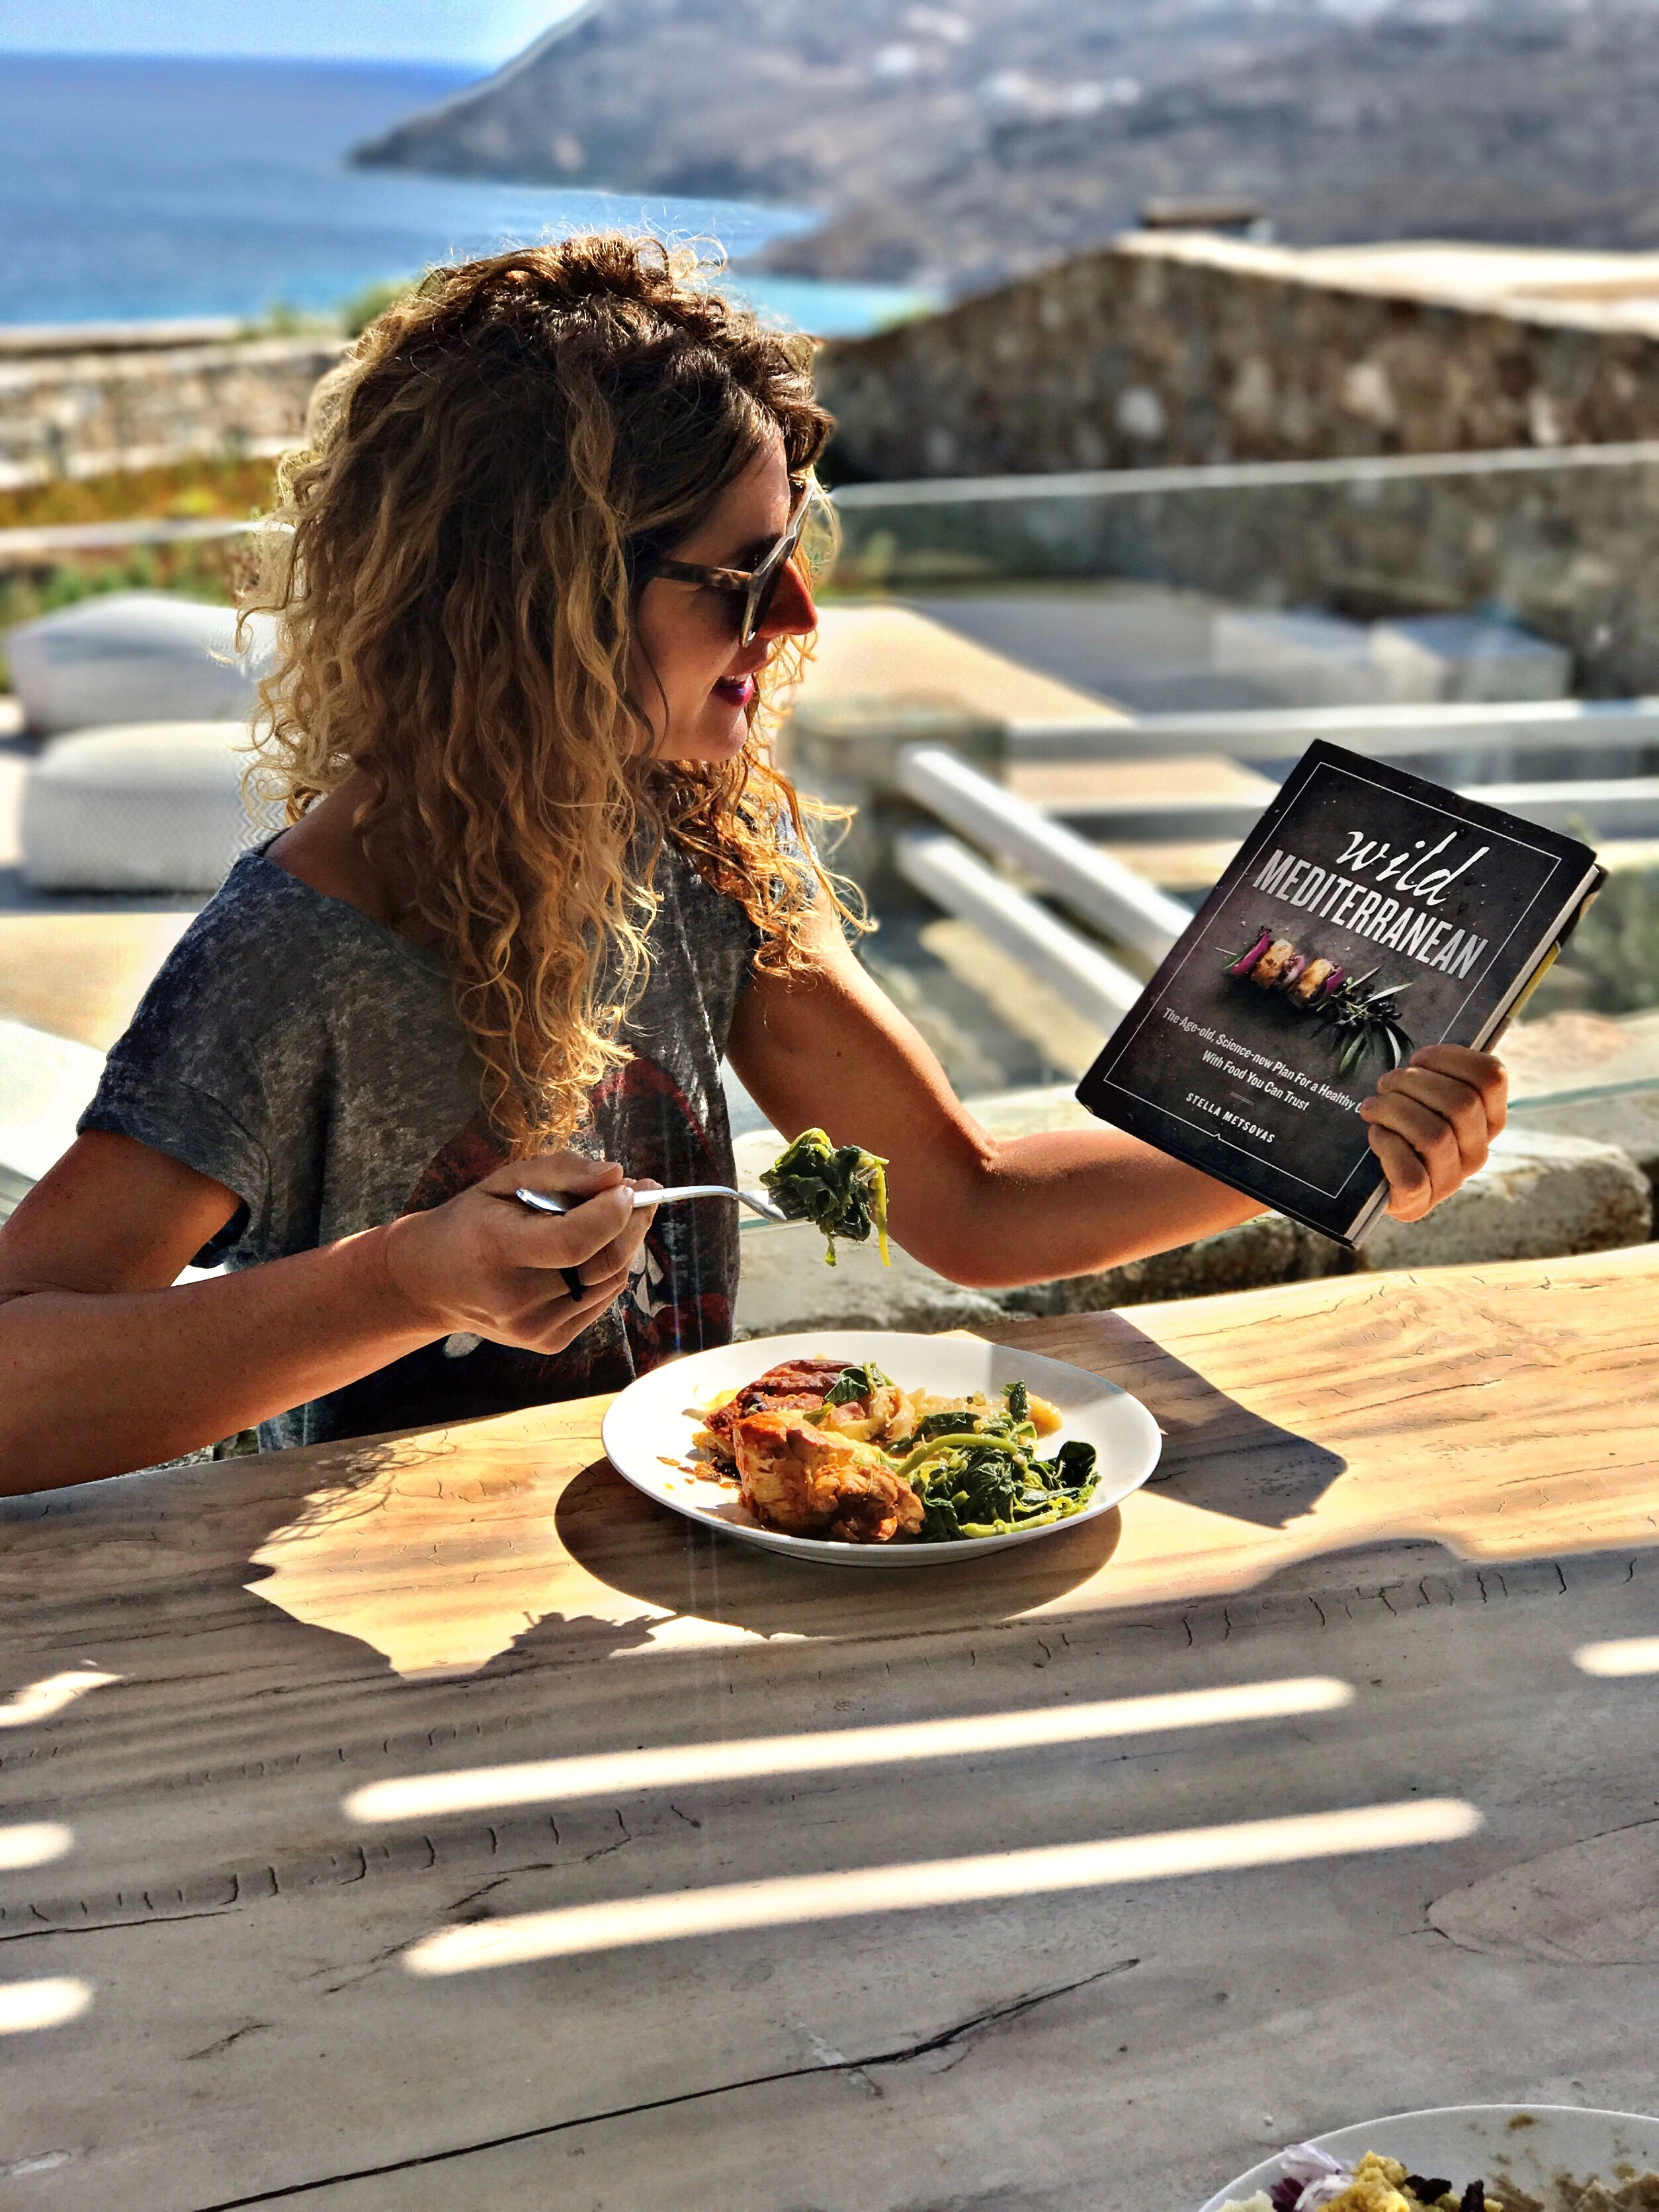 Stella metsovas eating lunch and enjoying her latest book while stella photographed with her book lastest book while visiting mykonos 2c greece.  credit   stella metsovas.